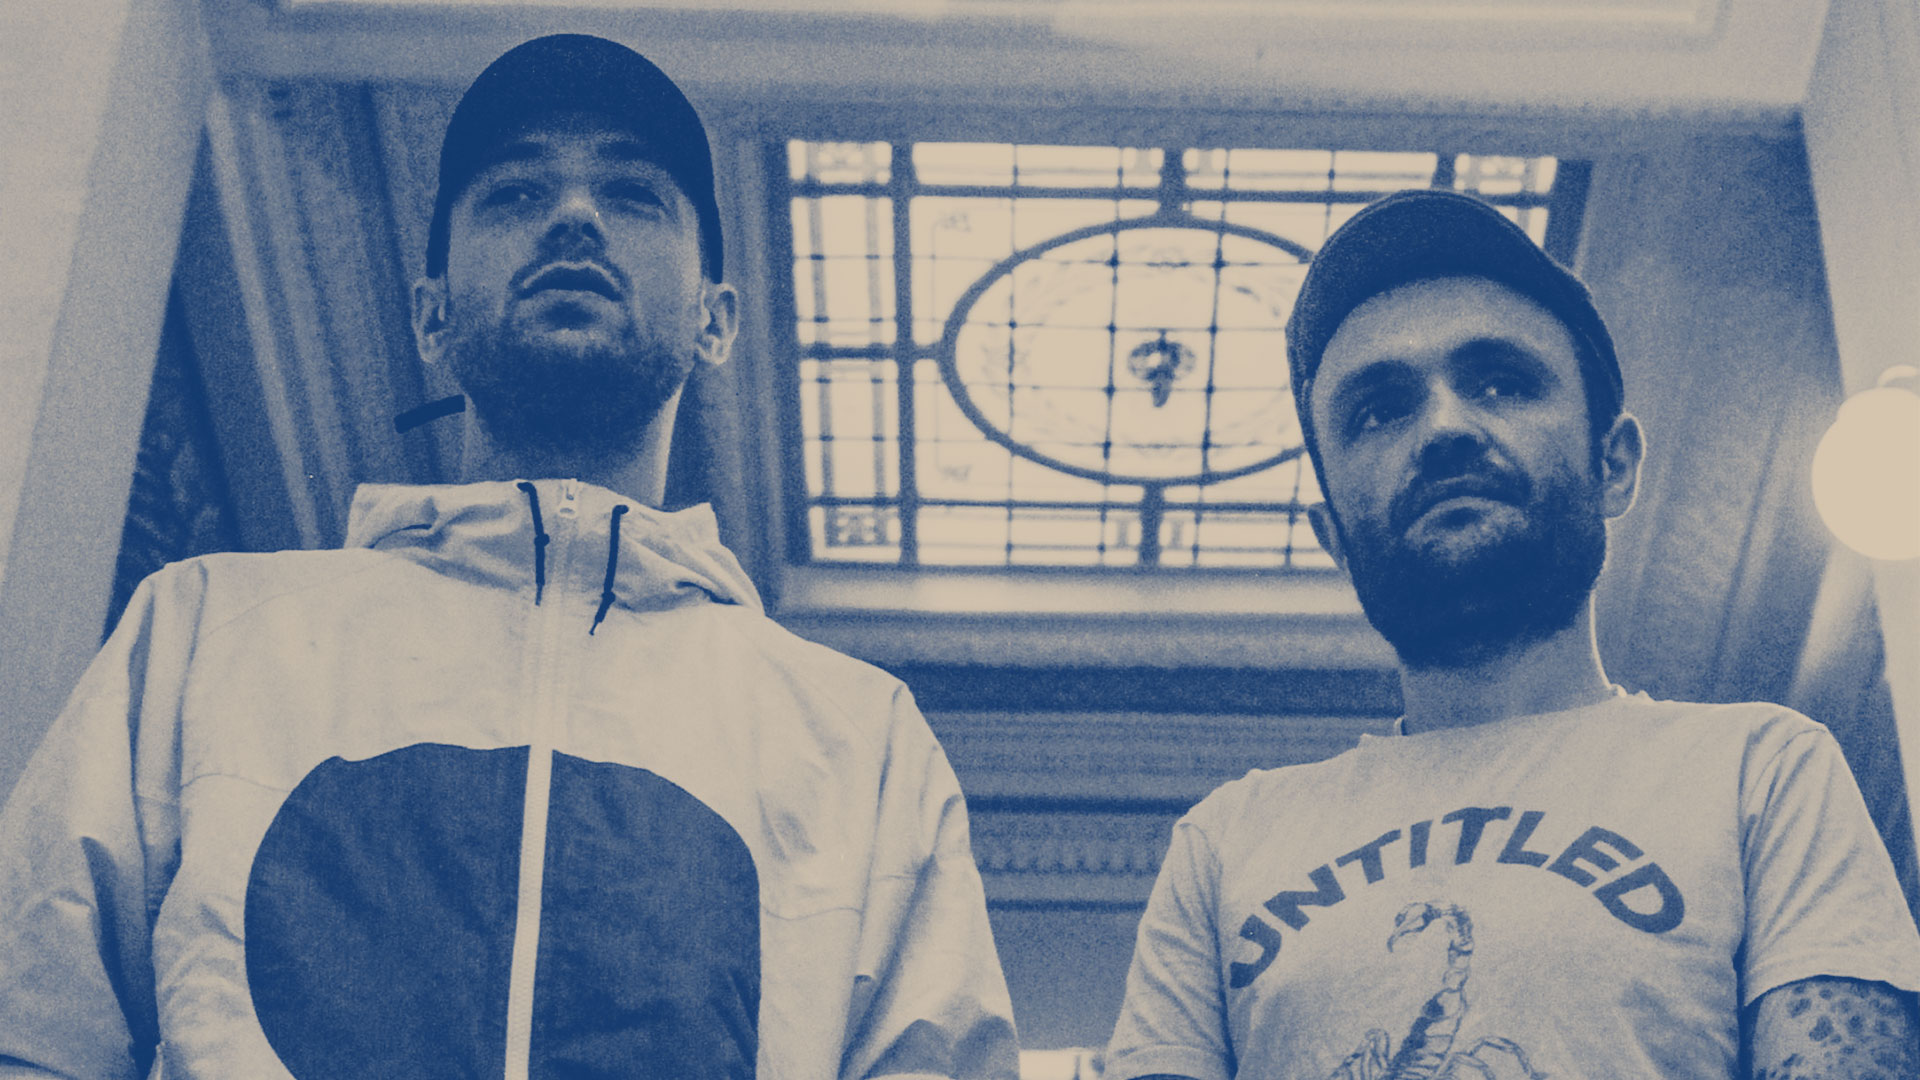 Spokesmen is a Drum & Bass production duo comprised of Damny and Speaker Louis.